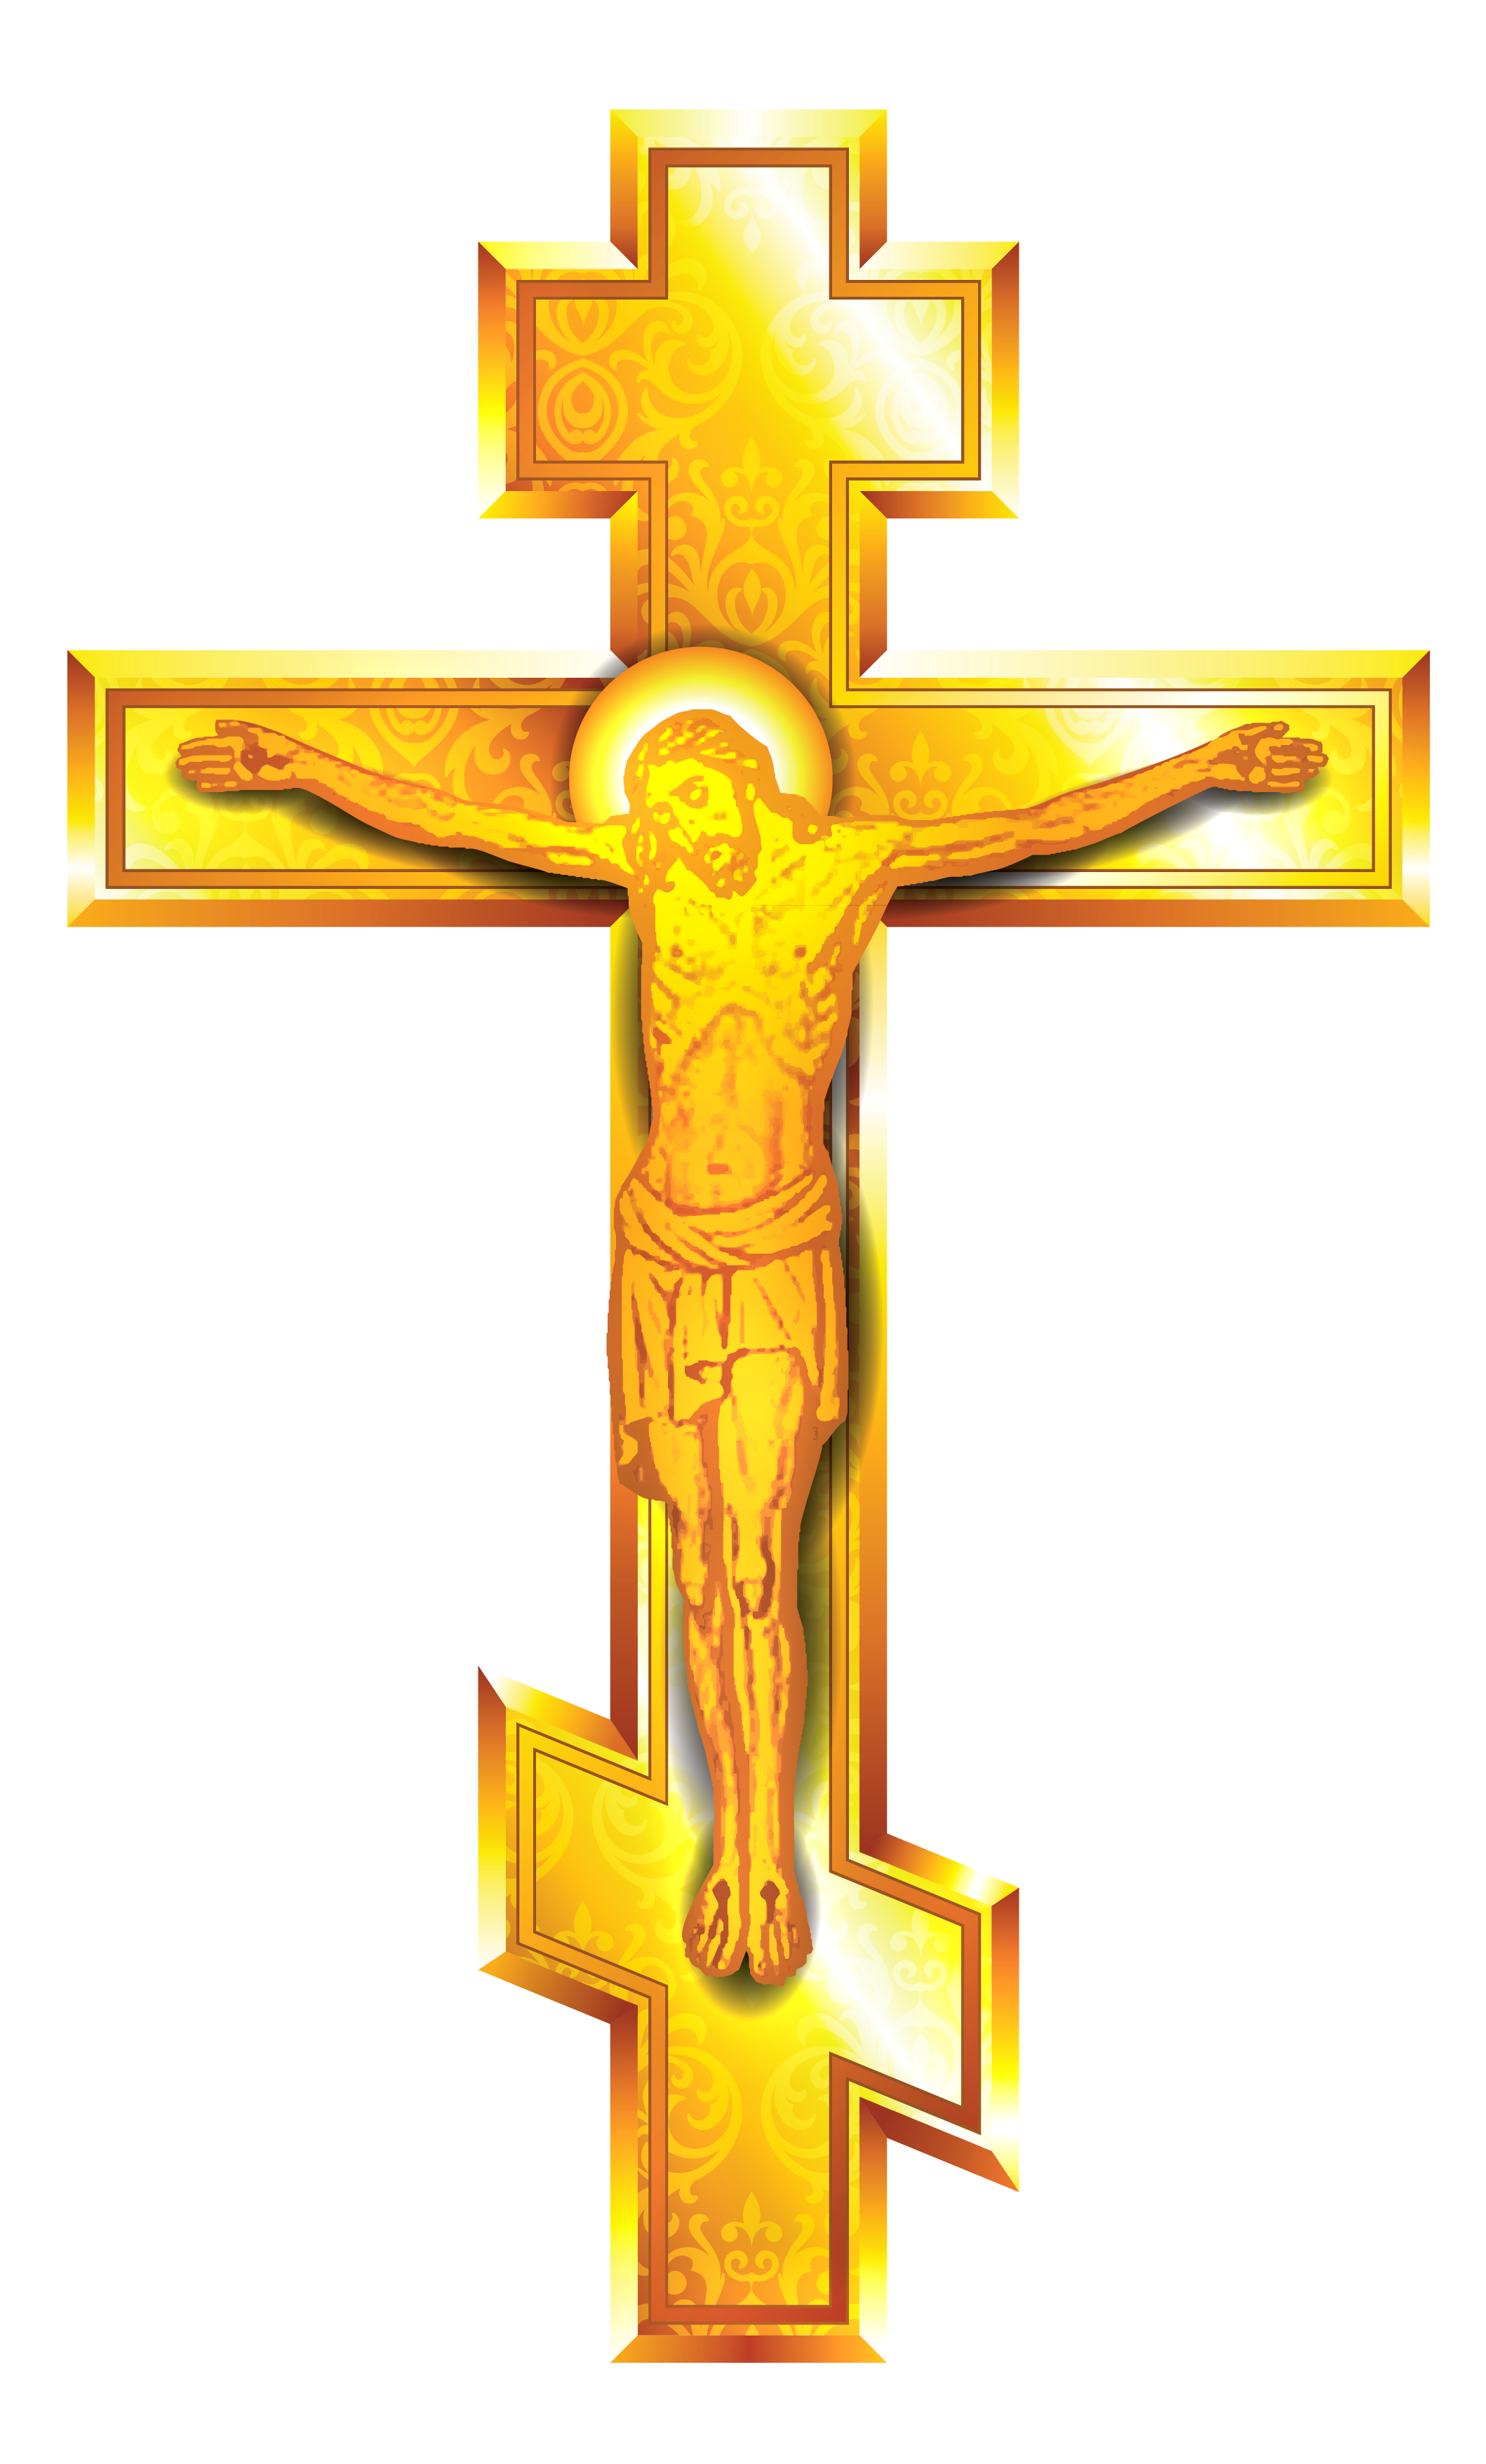 Cross clipart png jpg transparent library Cross Clipart | jokingart.com jpg transparent library